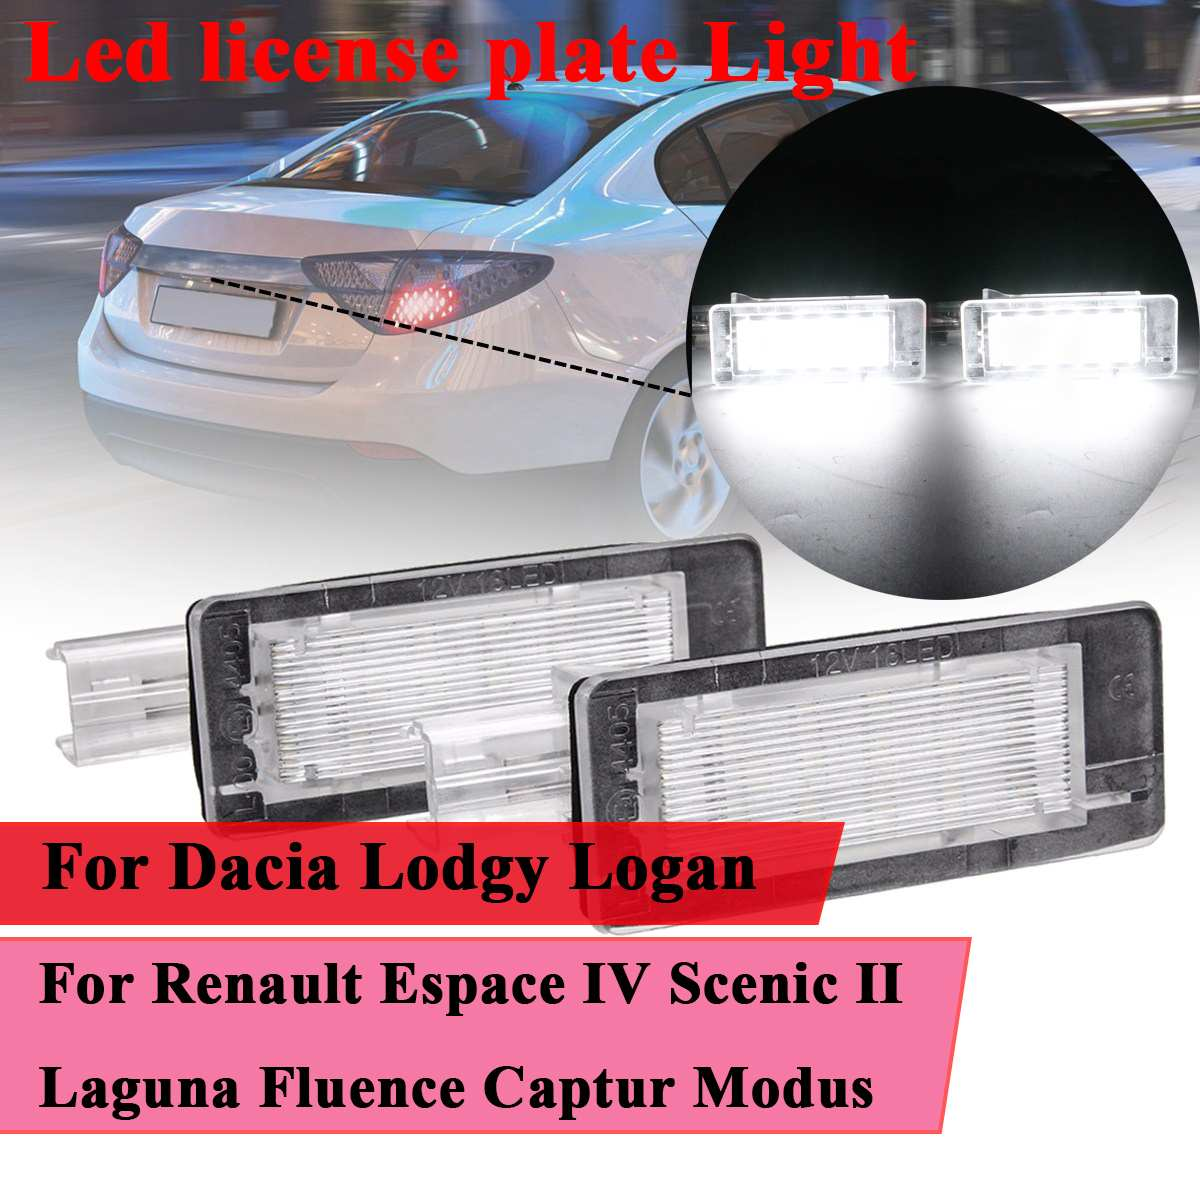 #8200013577 Car <font><b>Led</b></font> license plate Light For <font><b>Renault</b></font> Espace IV Scenic II III Laguna II Fluence Captur Modus For Dacia Lodgy Logan image